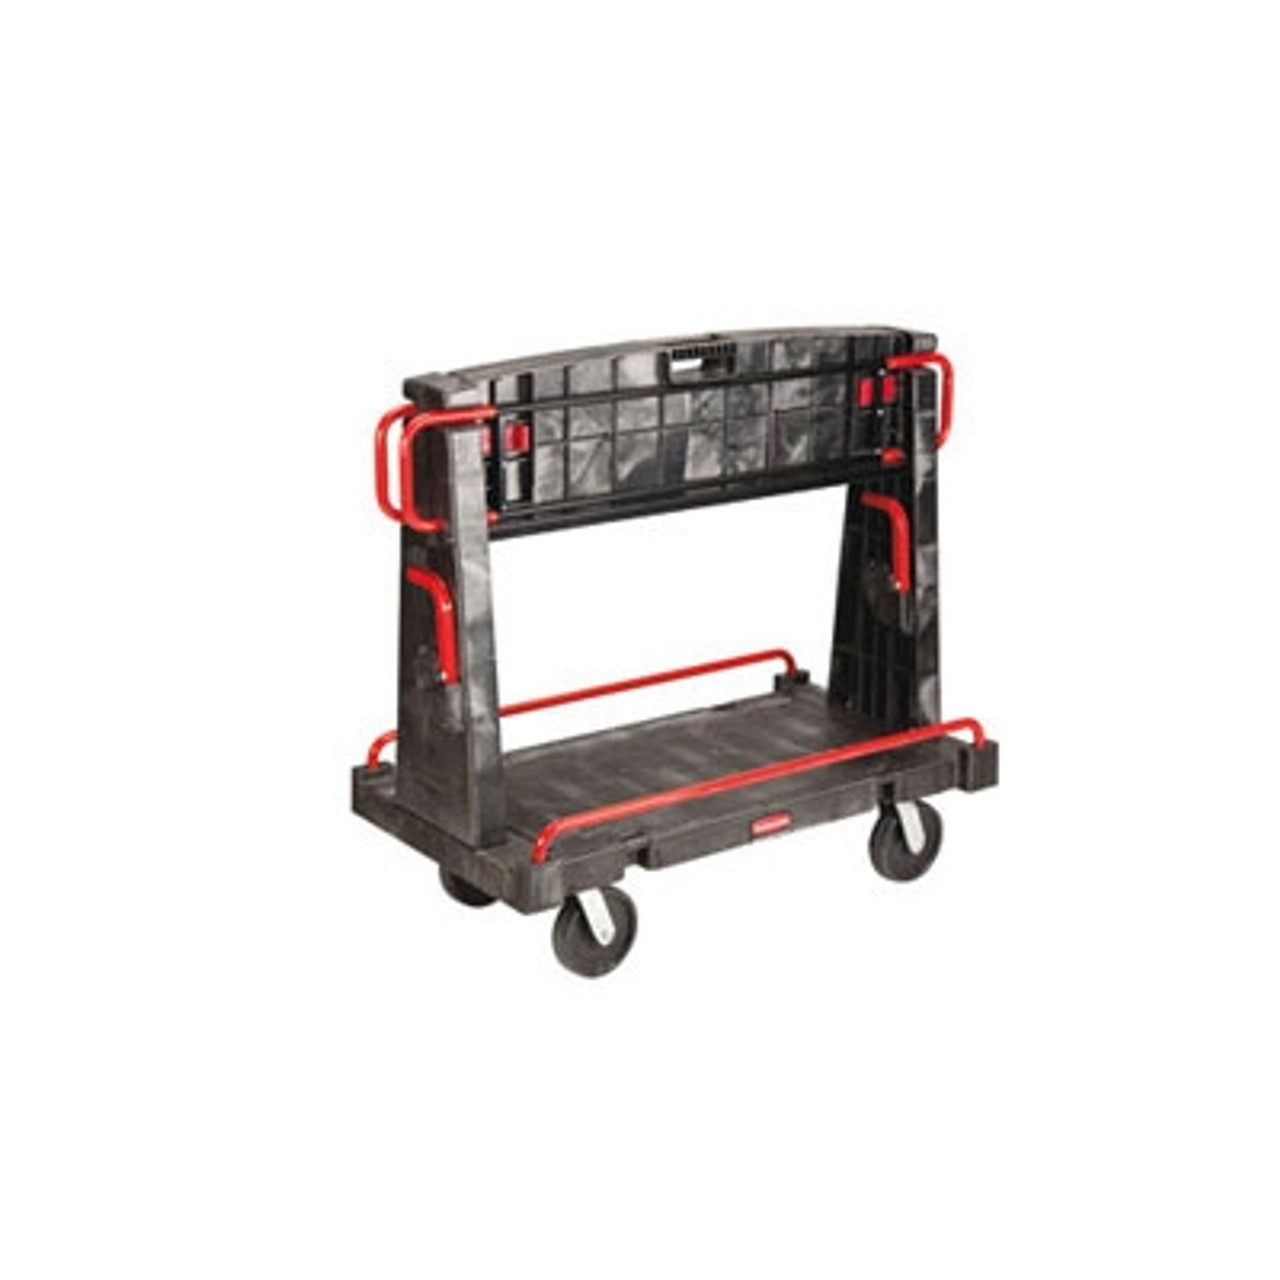 Rubbermaid Commercial A-Frame Truck, 2000-lb Cap., 2 Shelves, 27 1/4w x 50 1/4d x 49 1/2h, Black